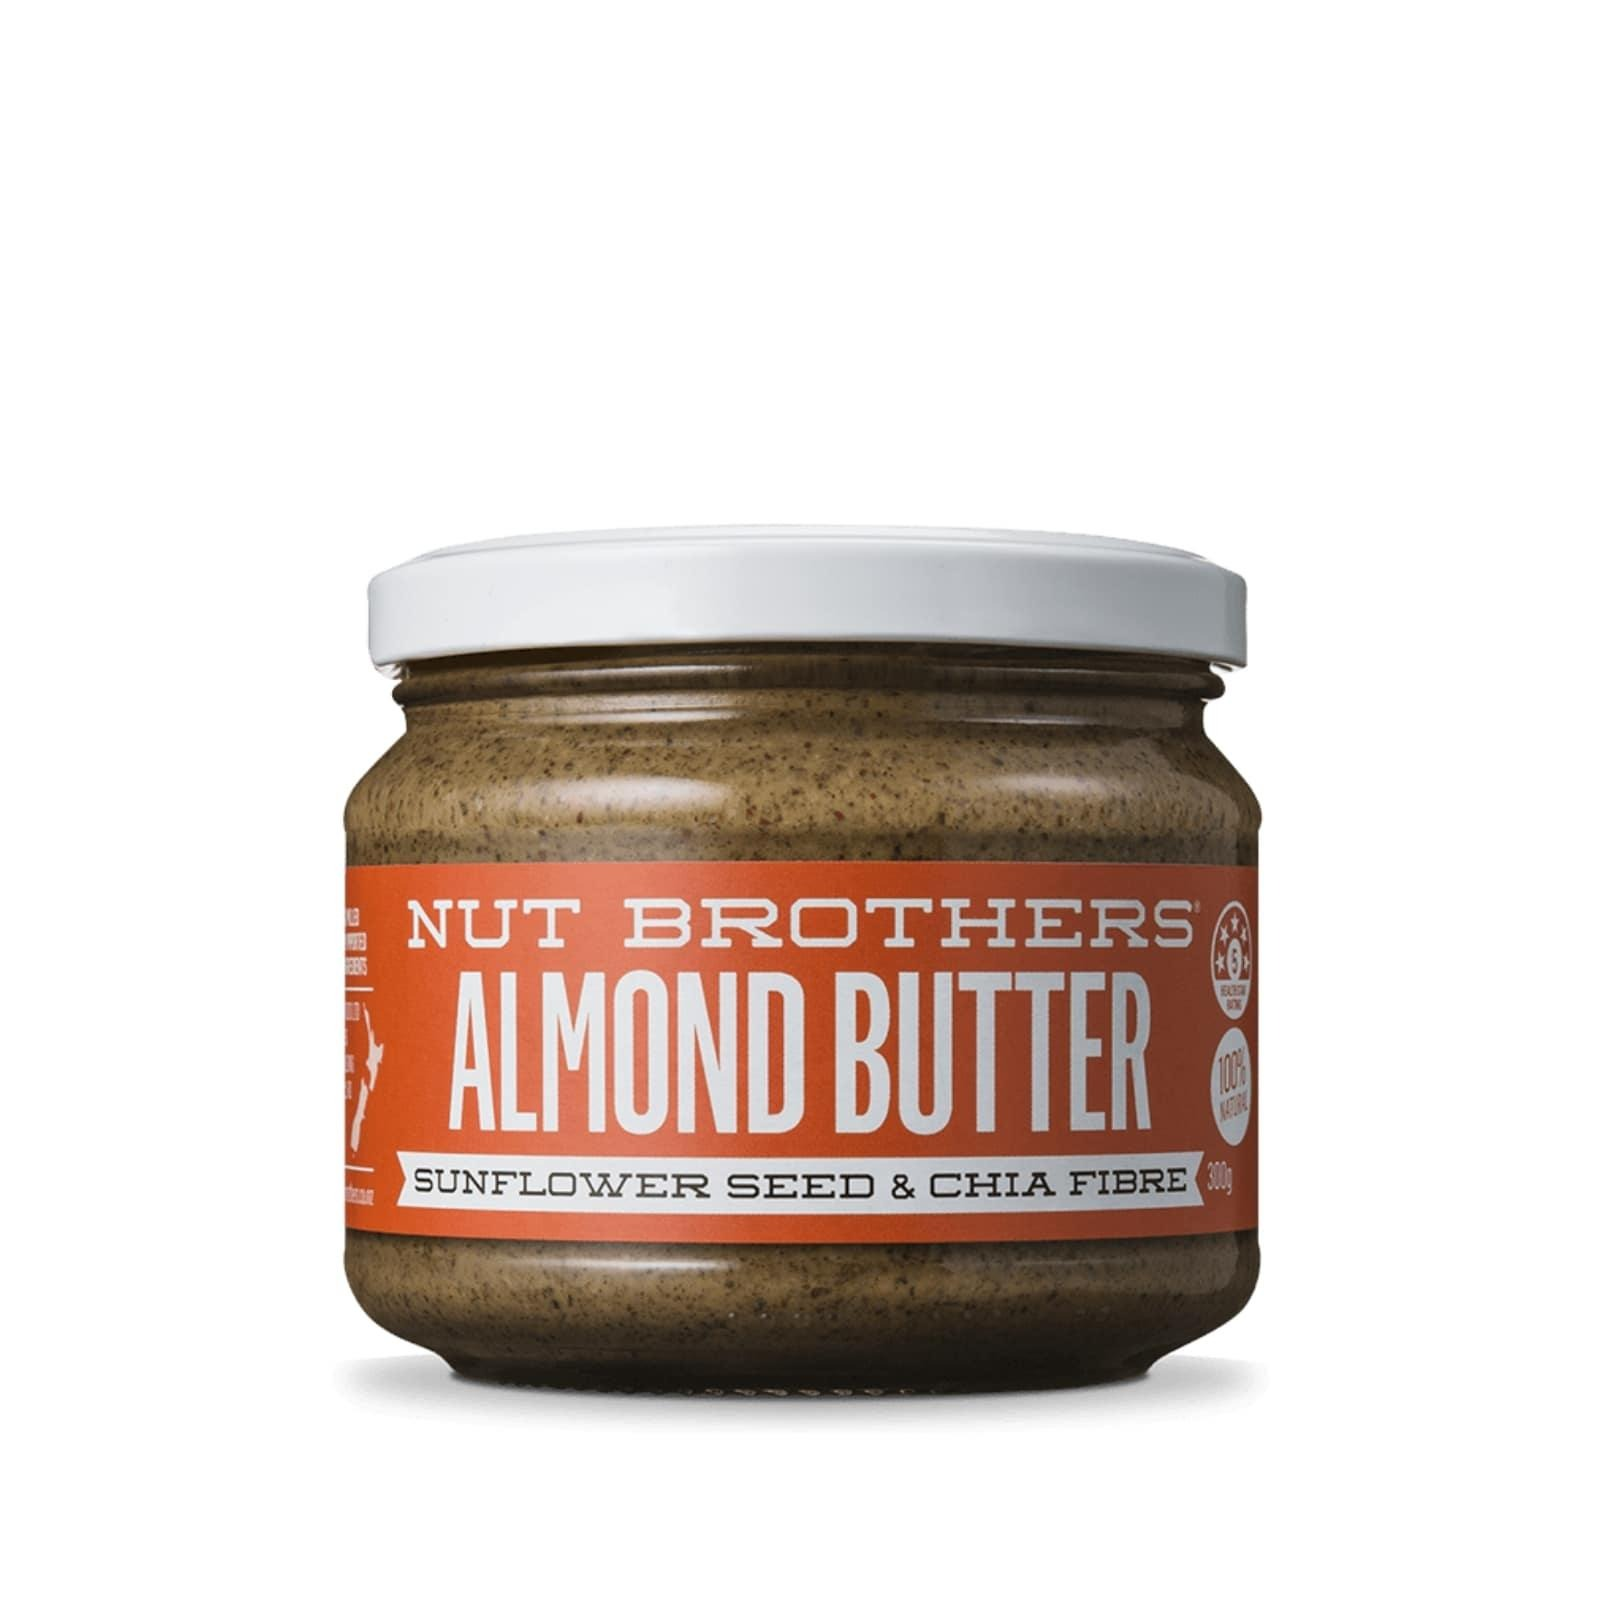 NUT BROTHERS Almond Butter Sunflower and Chia 300G